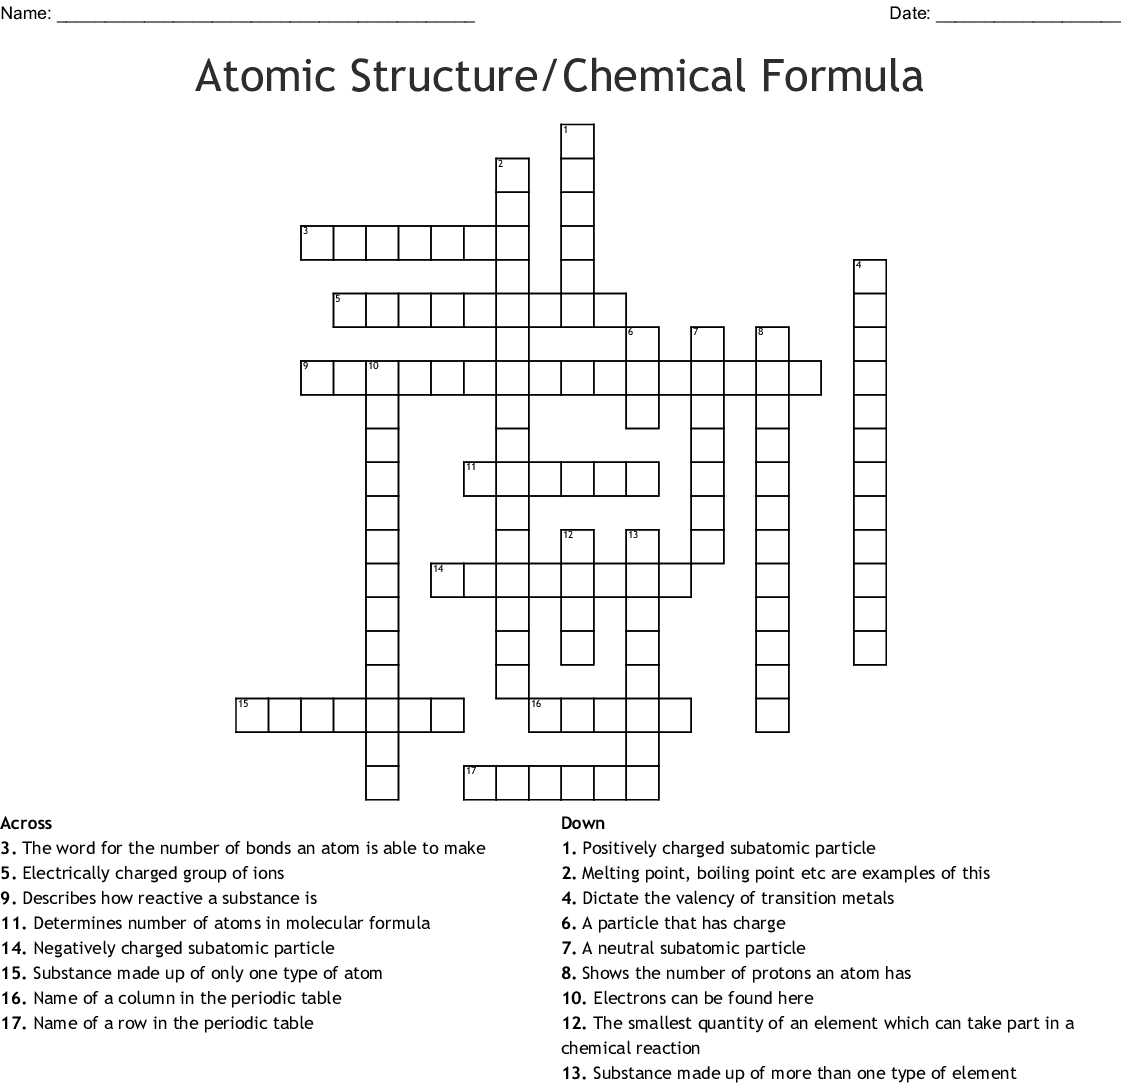 Atomic Structure Chemical Formula Crossword